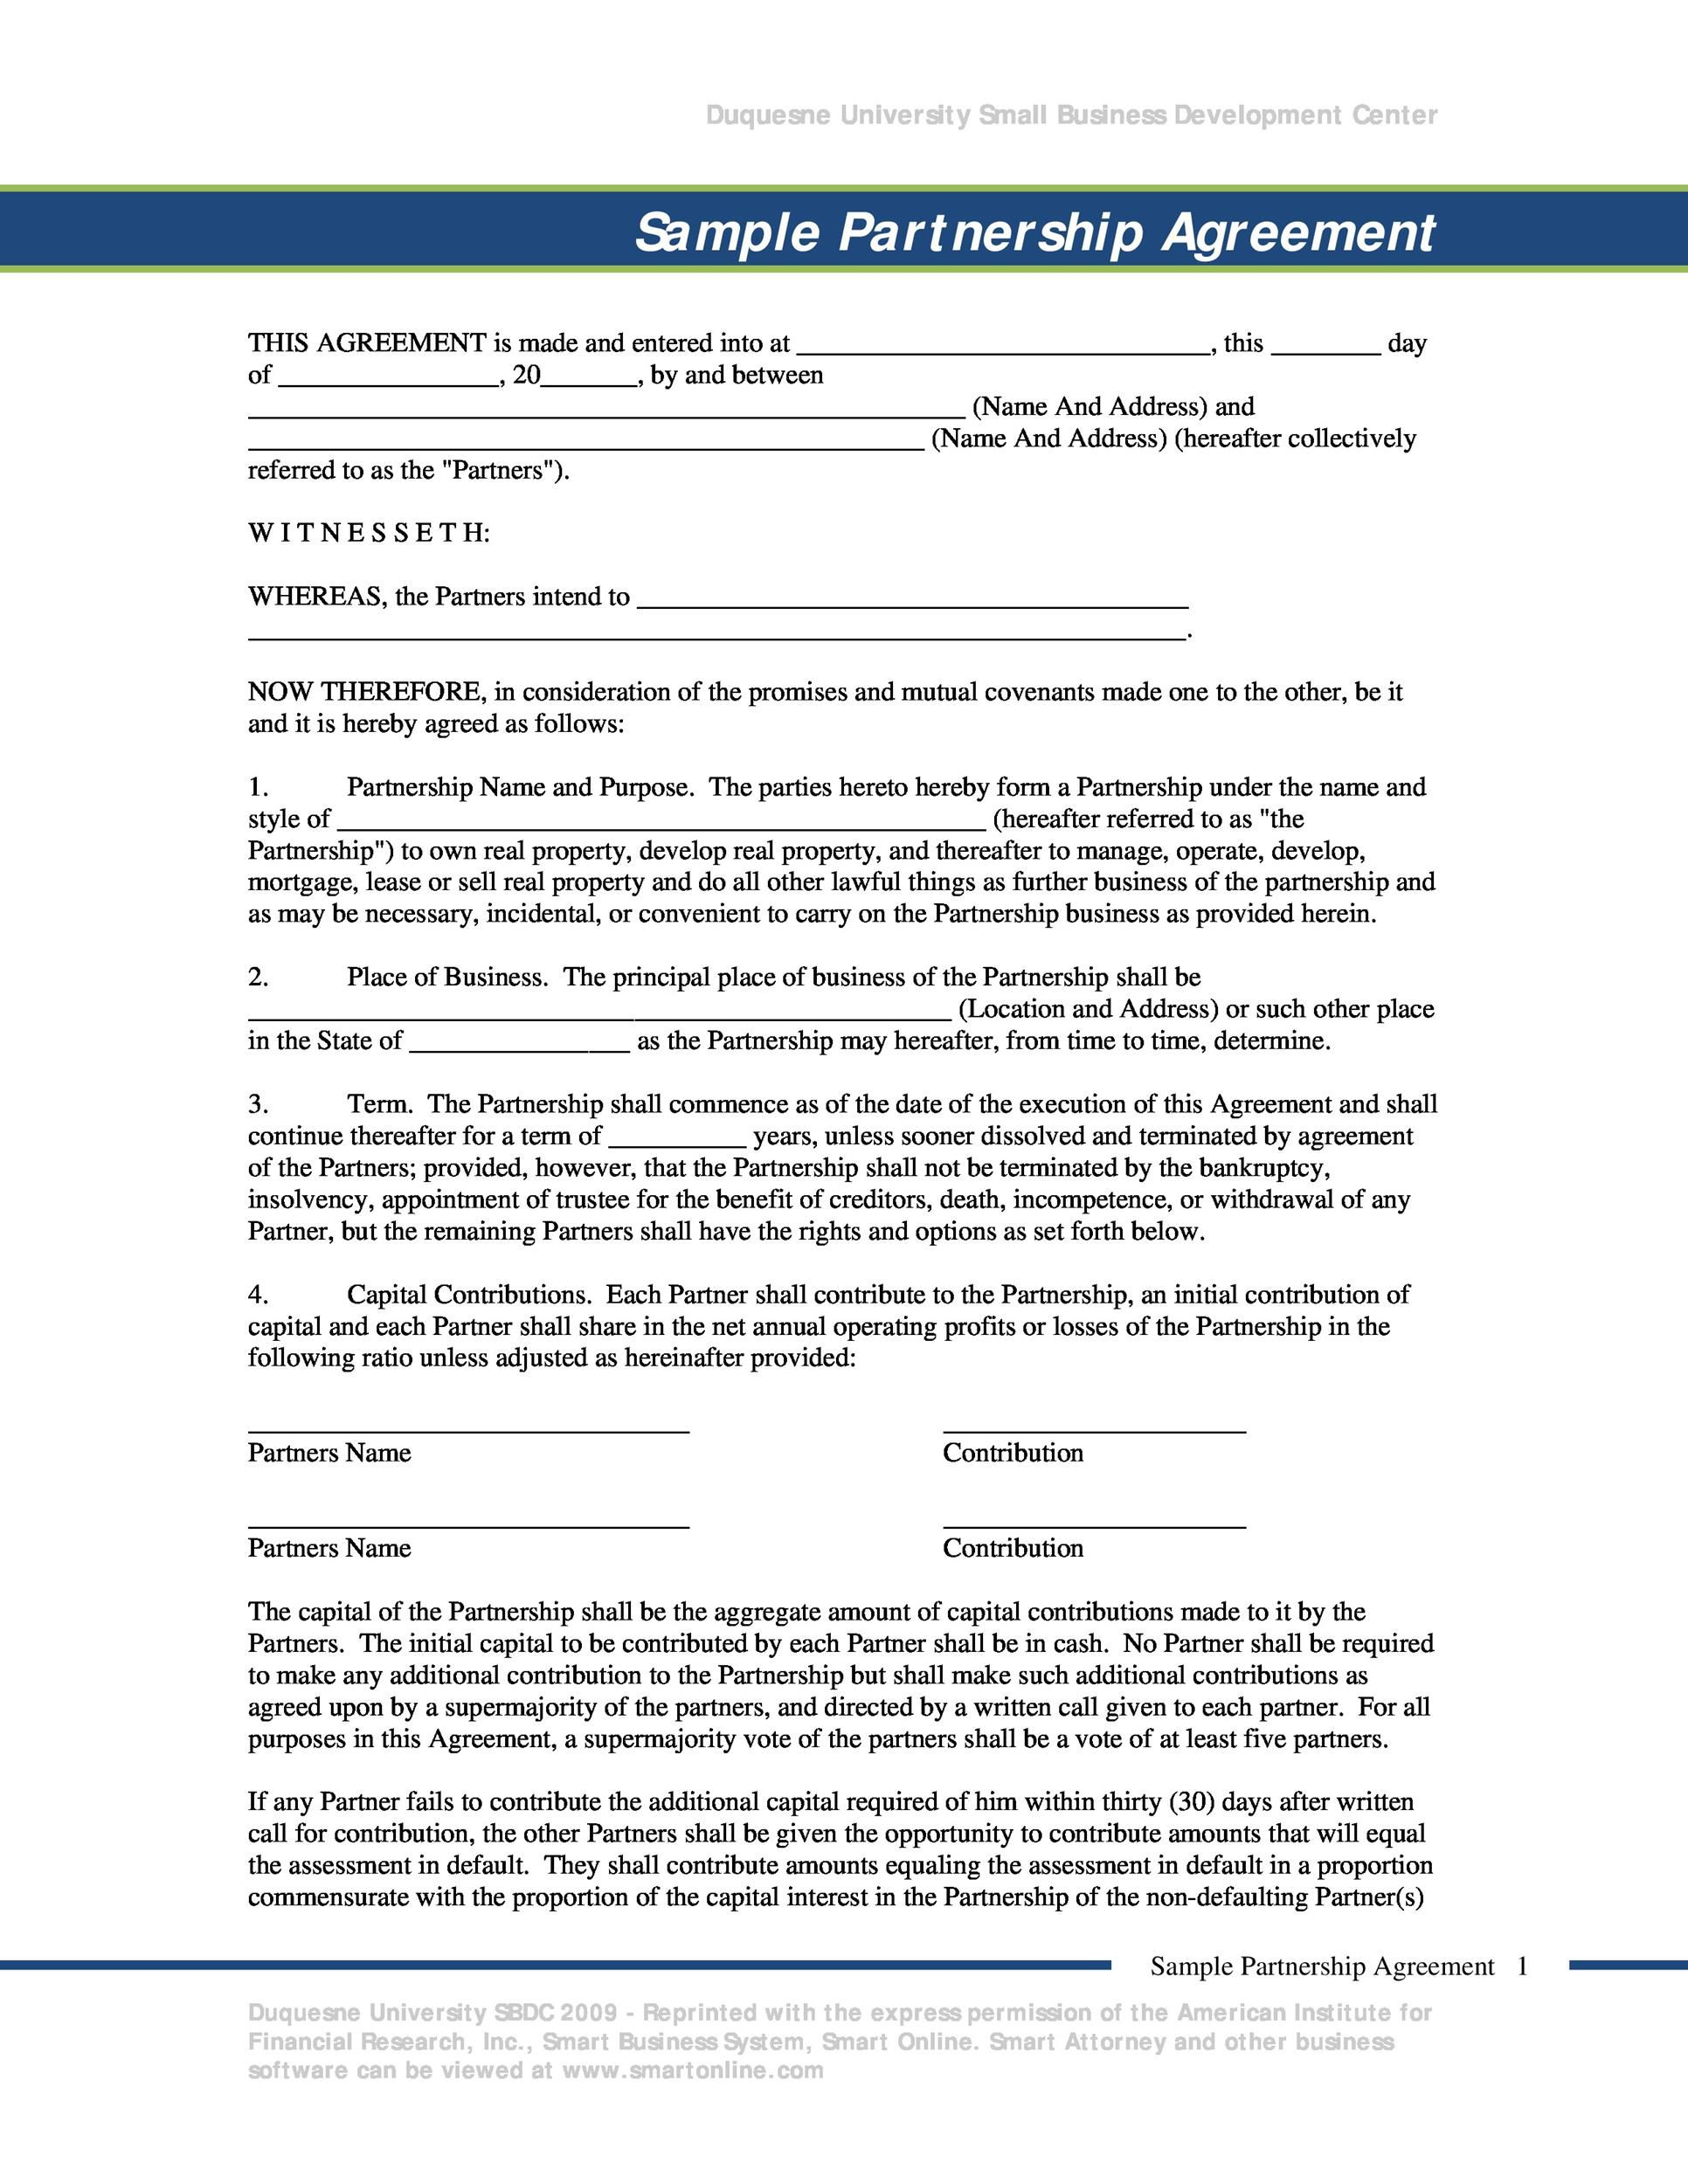 006 Beautiful Partnership Buyout Agreement Template Photo  Buy Sell Small Busines FormFull